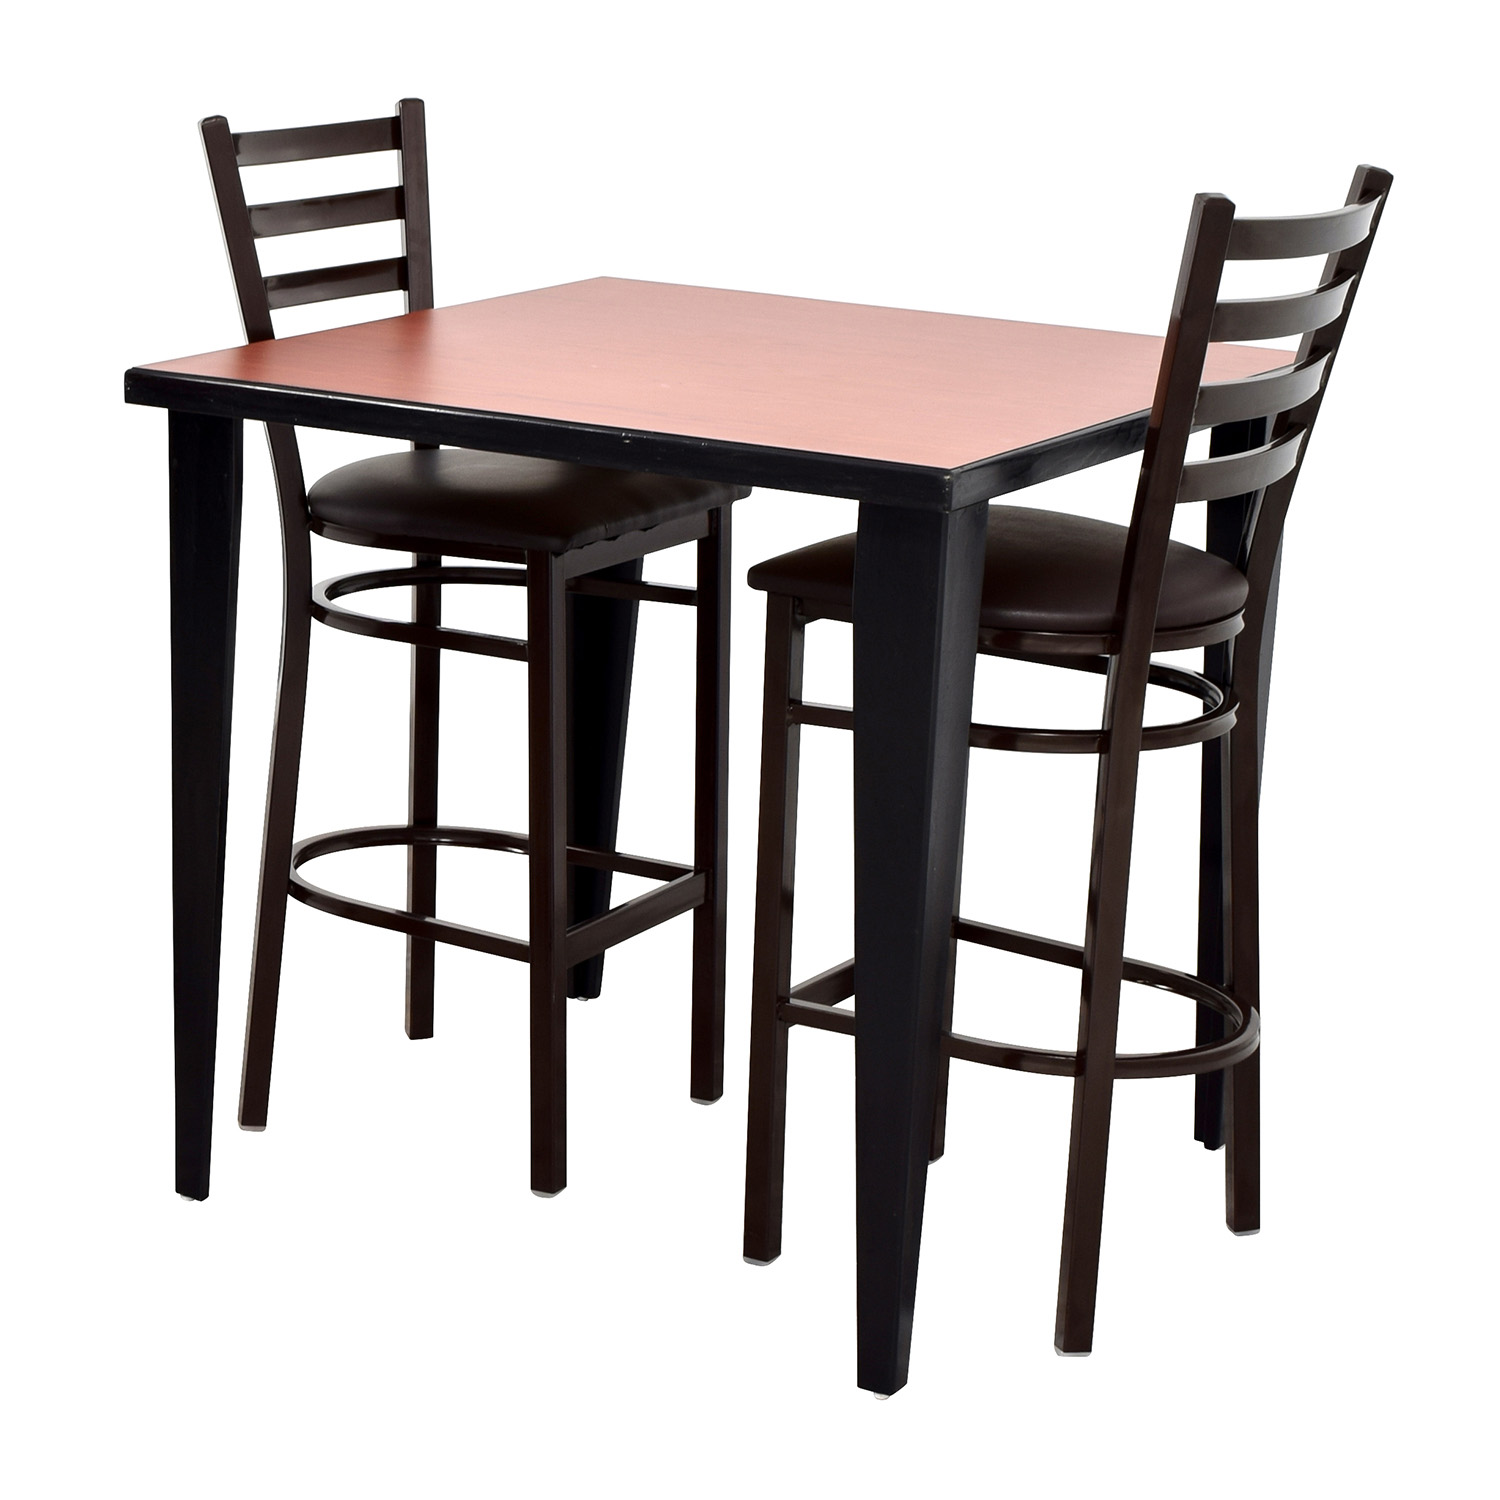 used kitchen chairs best office chair for neck pain 76 off counter height table and two tables